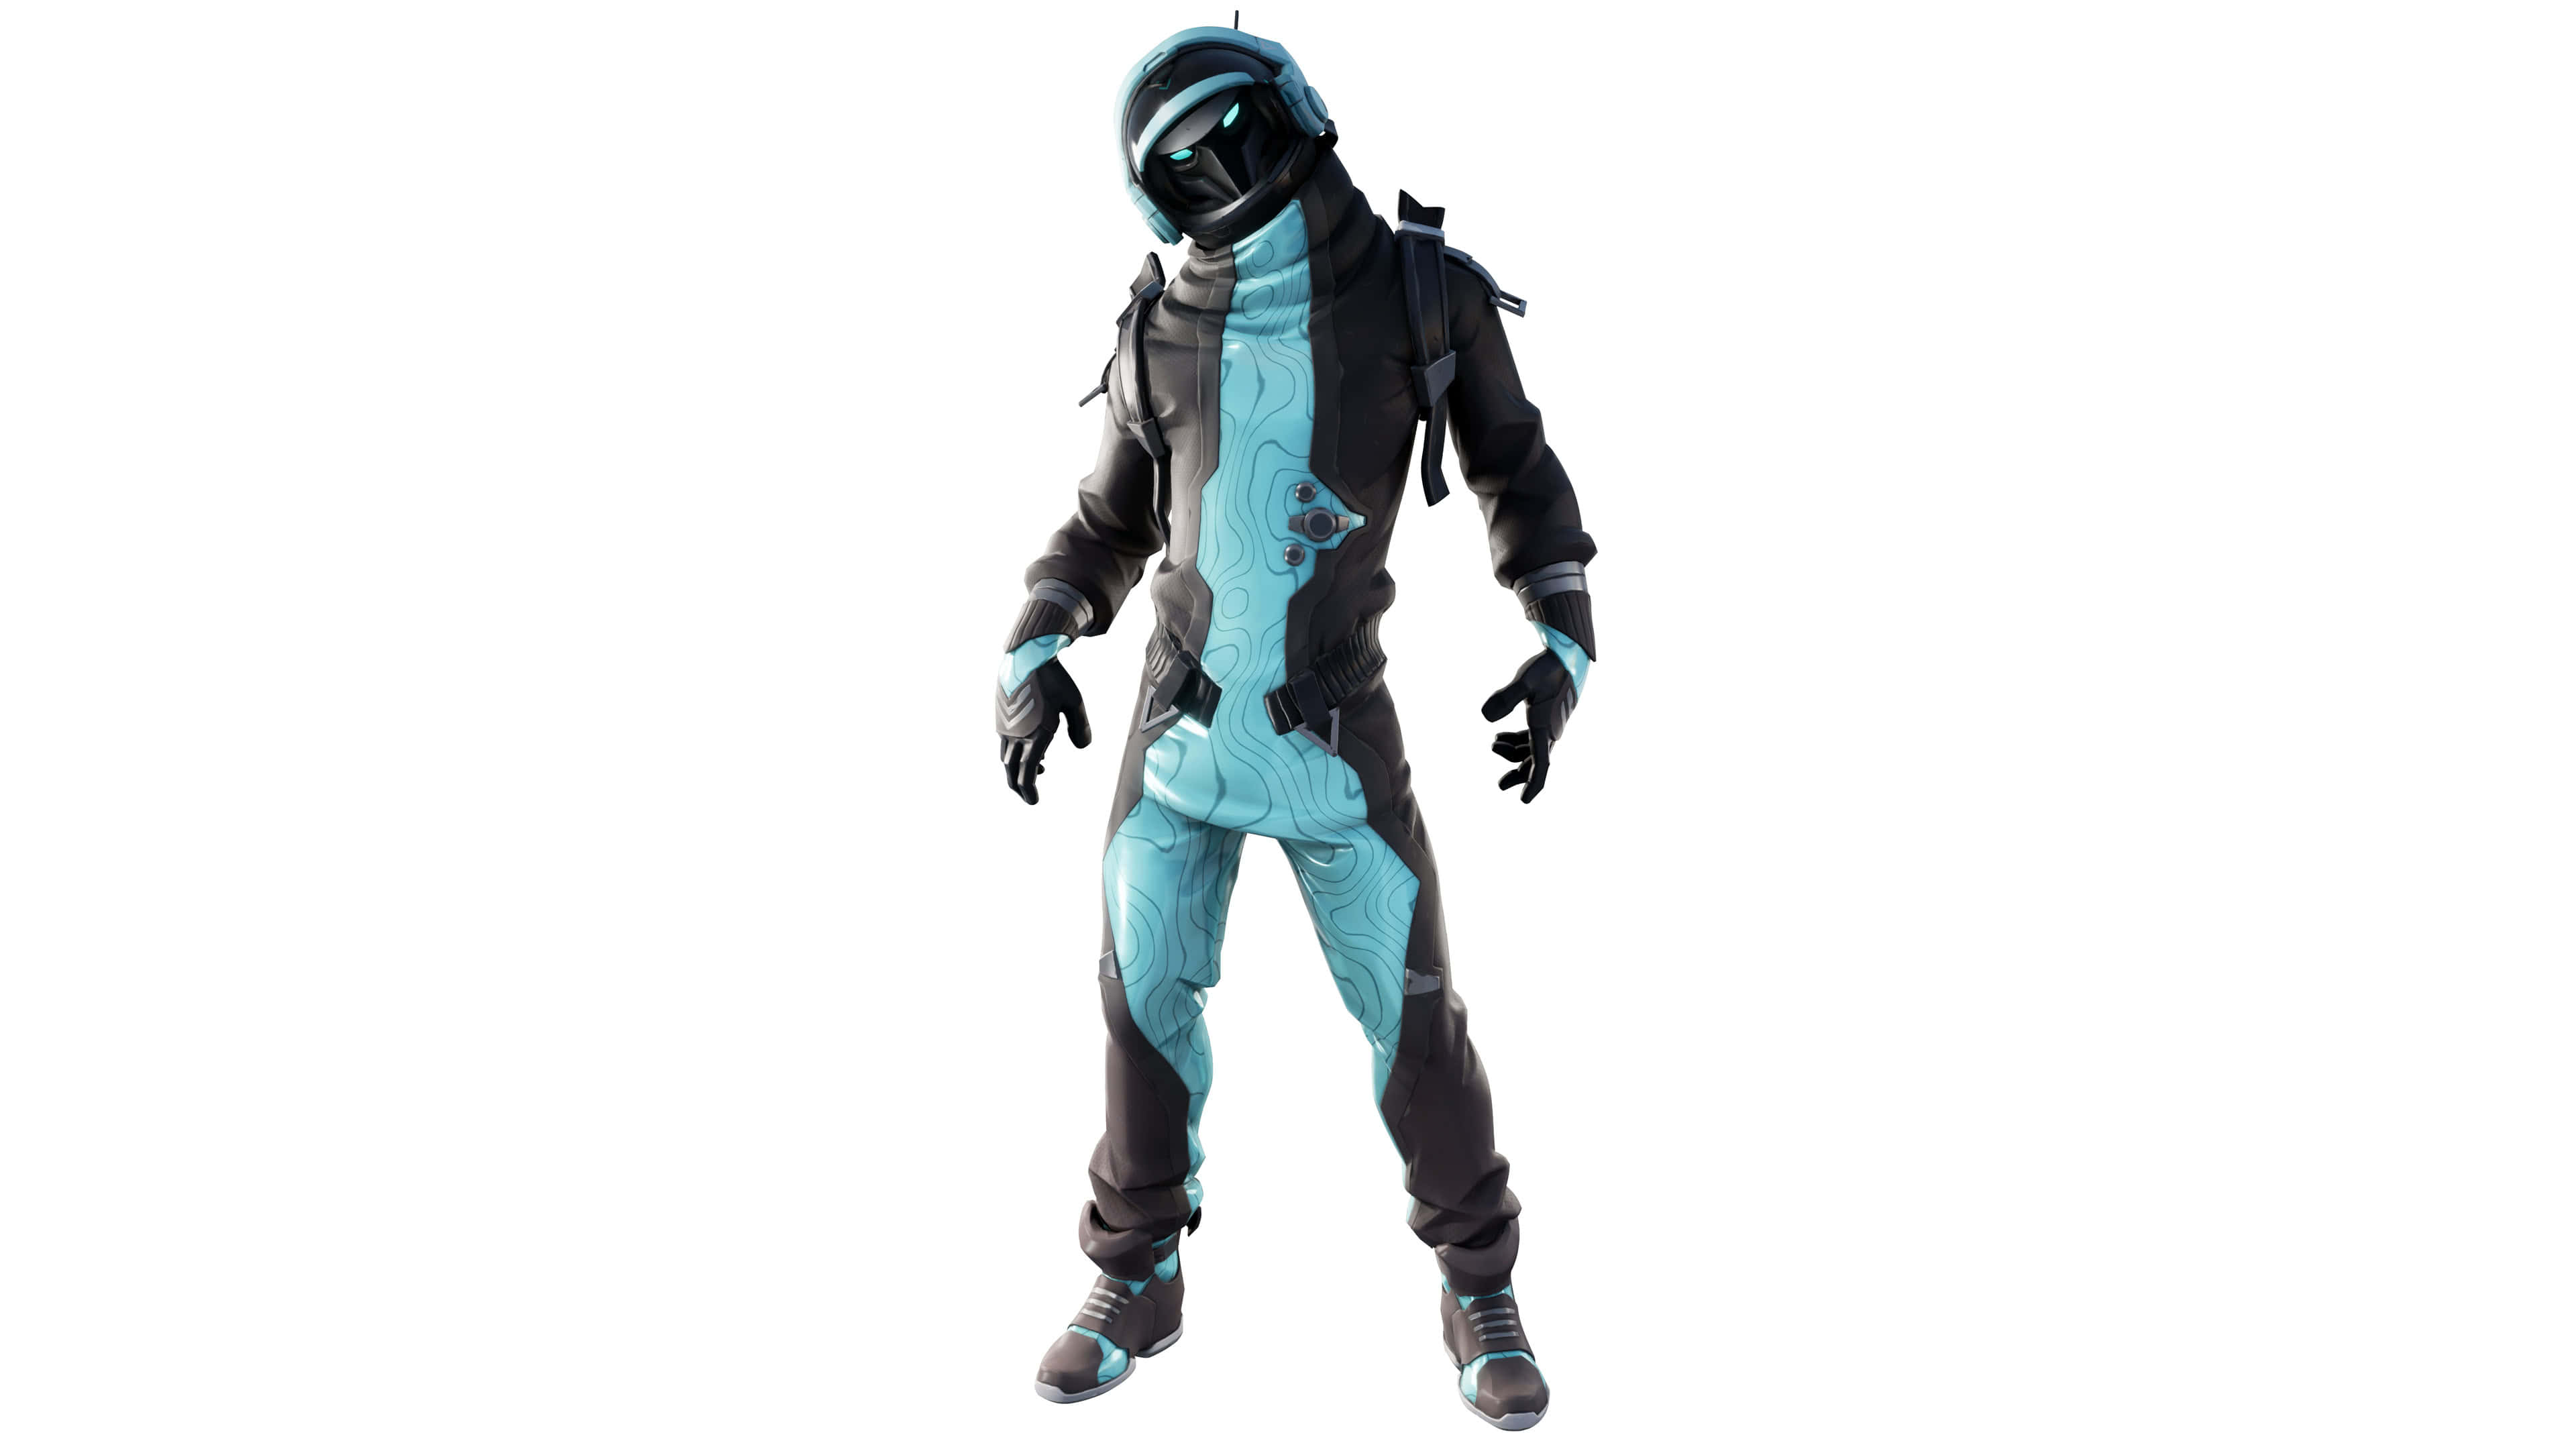 fortnite space explorers set eternal voyager style 2 skin outfit uhd 4k wallpaper